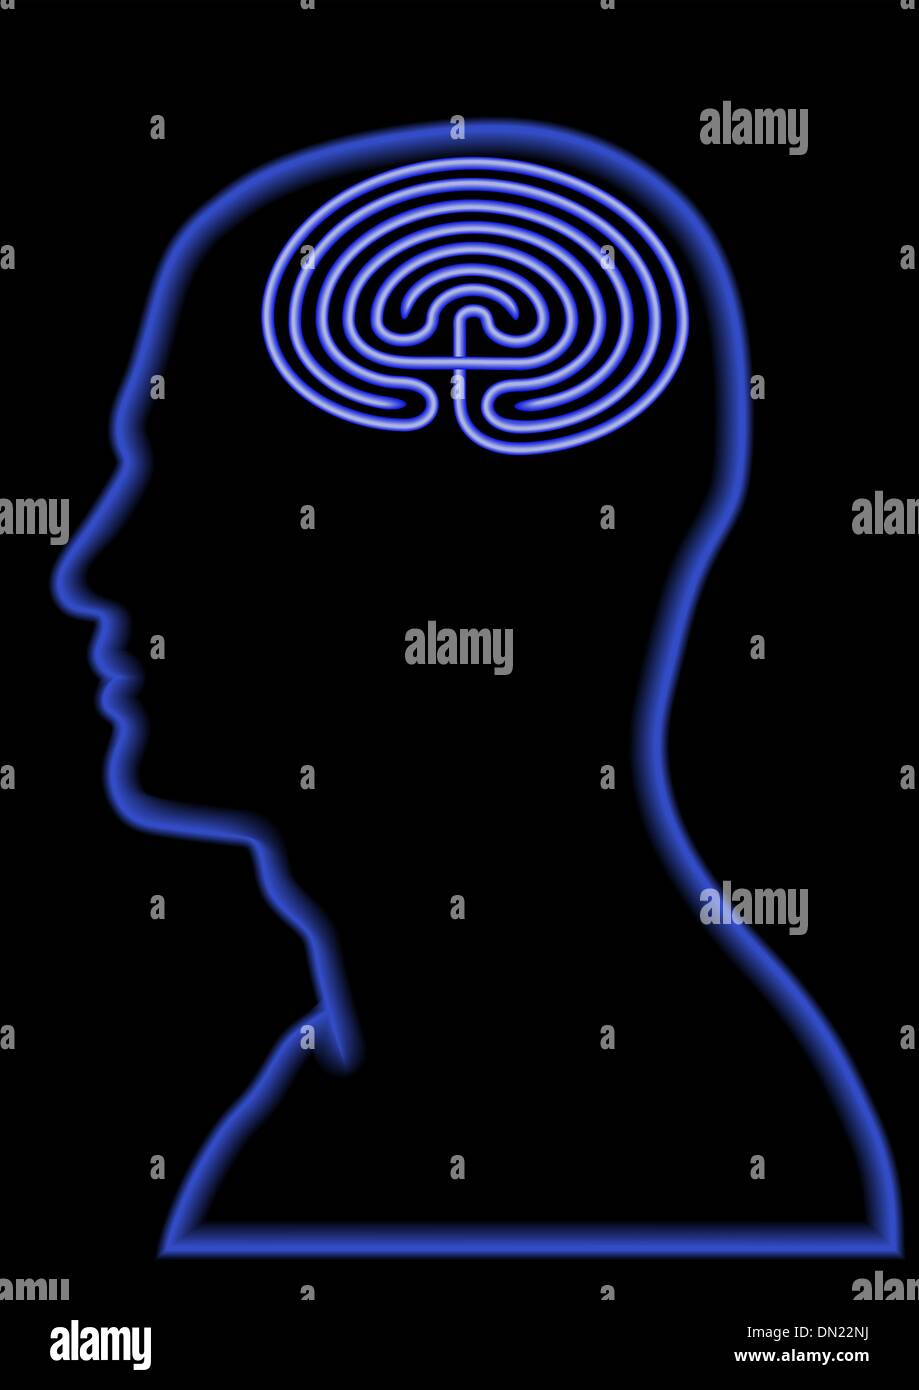 confused - maze in head - confused brain - Stock Image